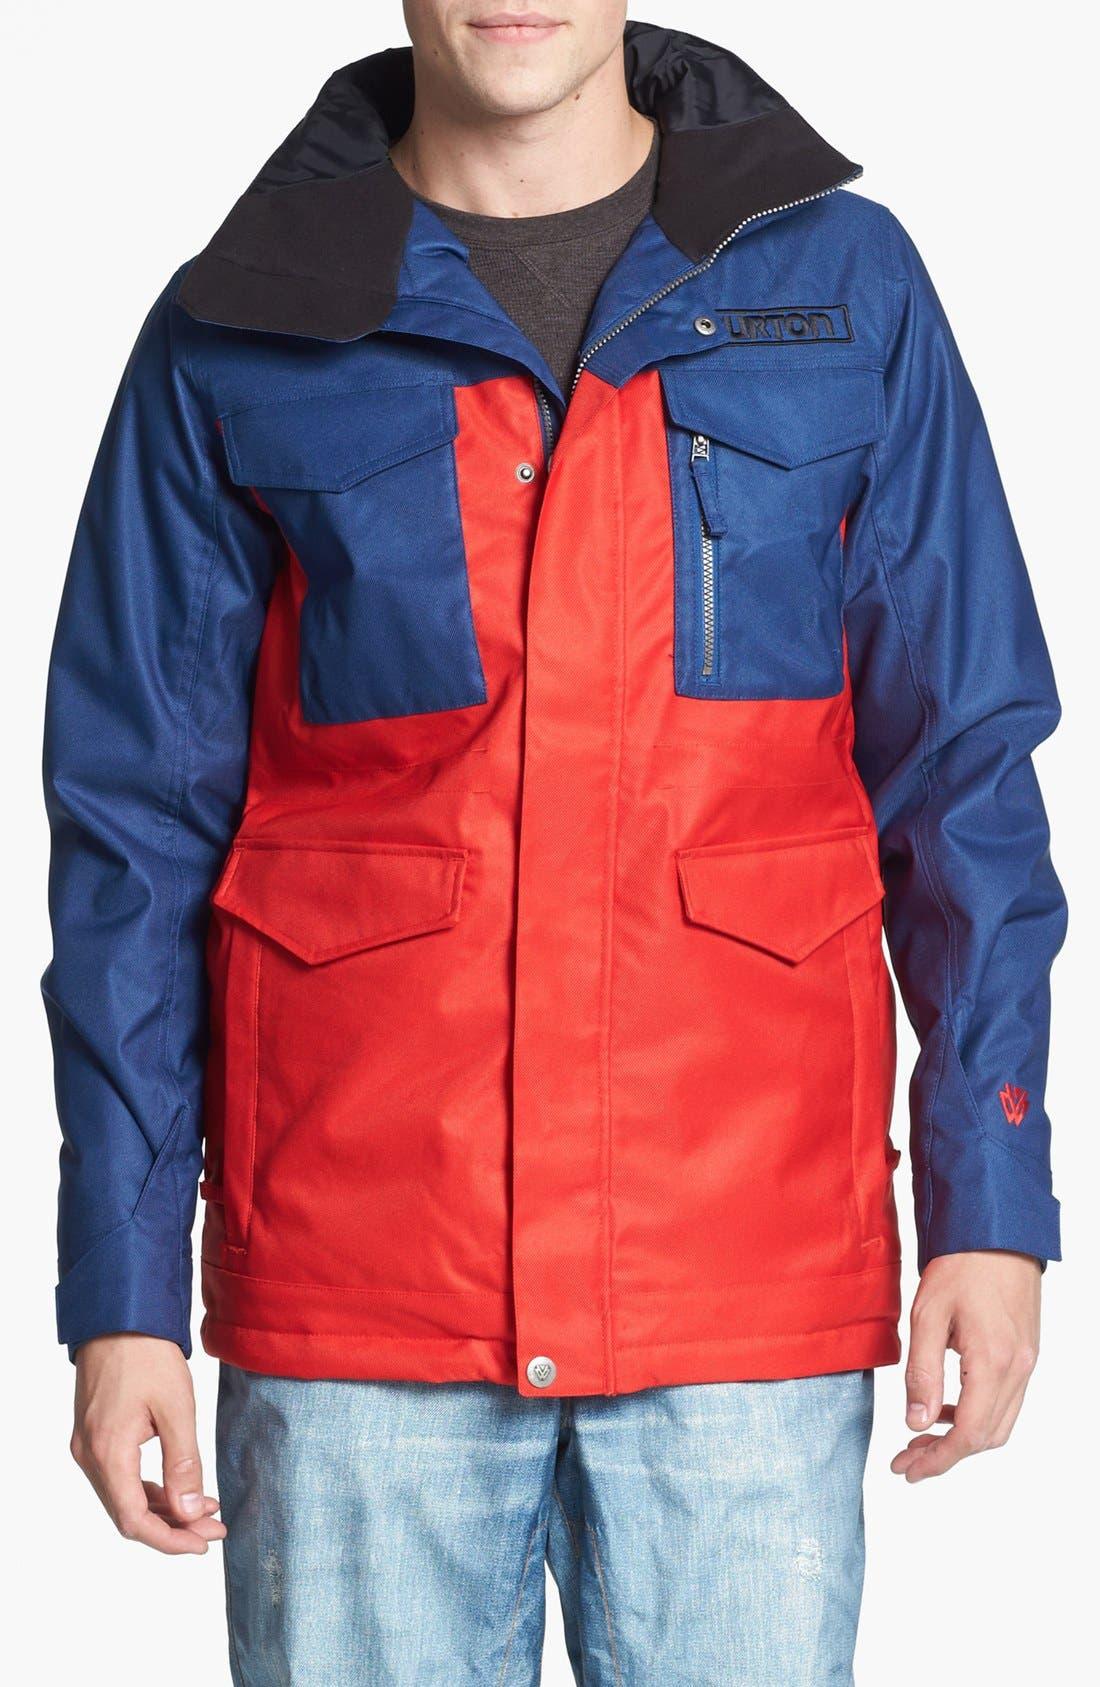 Alternate Image 1 Selected - Burton 'The White Collection - Cannon' Waterproof Jacket